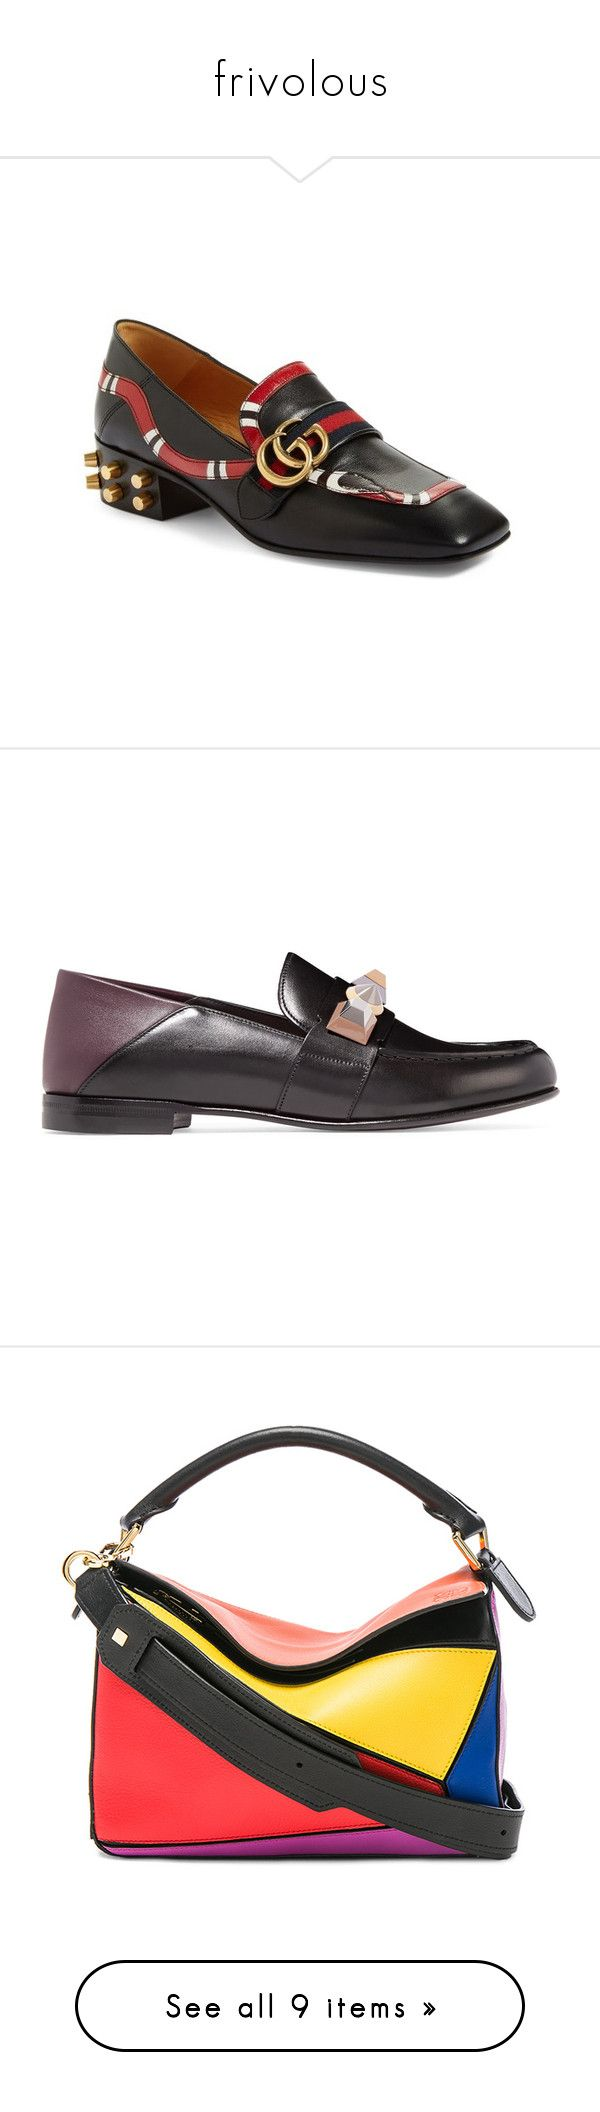 """""""frivolous"""" by beat-bop ❤ liked on Polyvore featuring shoes, loafers, black, leather footwear, snake leather shoes, black loafer shoes, leather loafer shoes, real leather shoes, black leather loafers and leather loafers"""